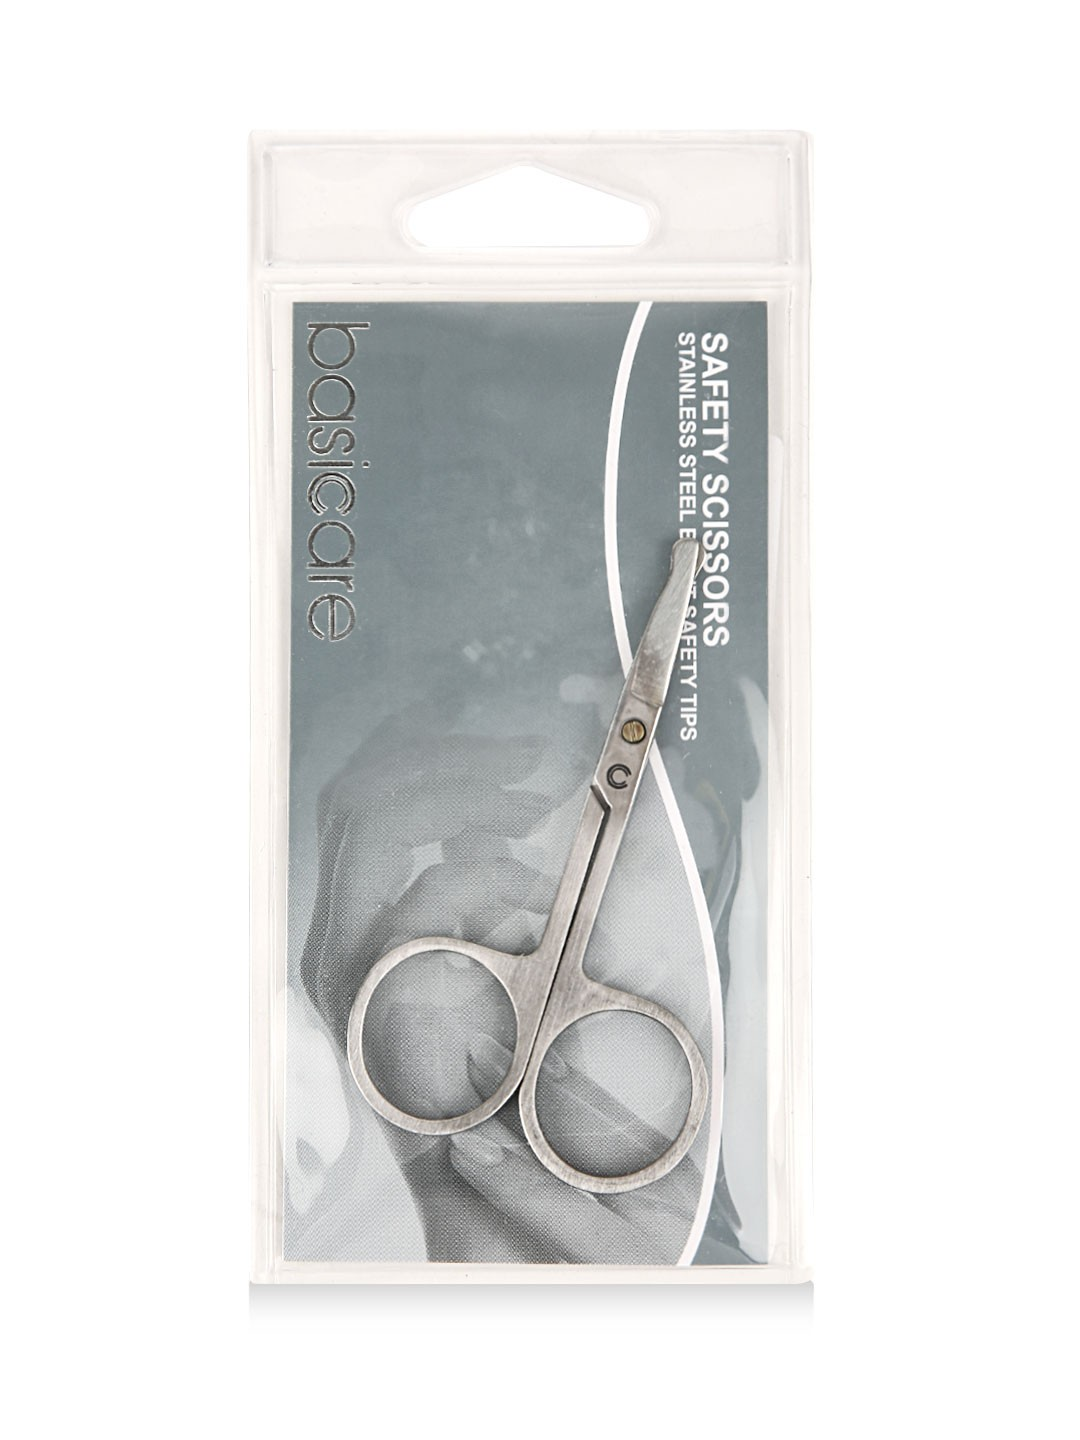 Basicare Safety Scissors